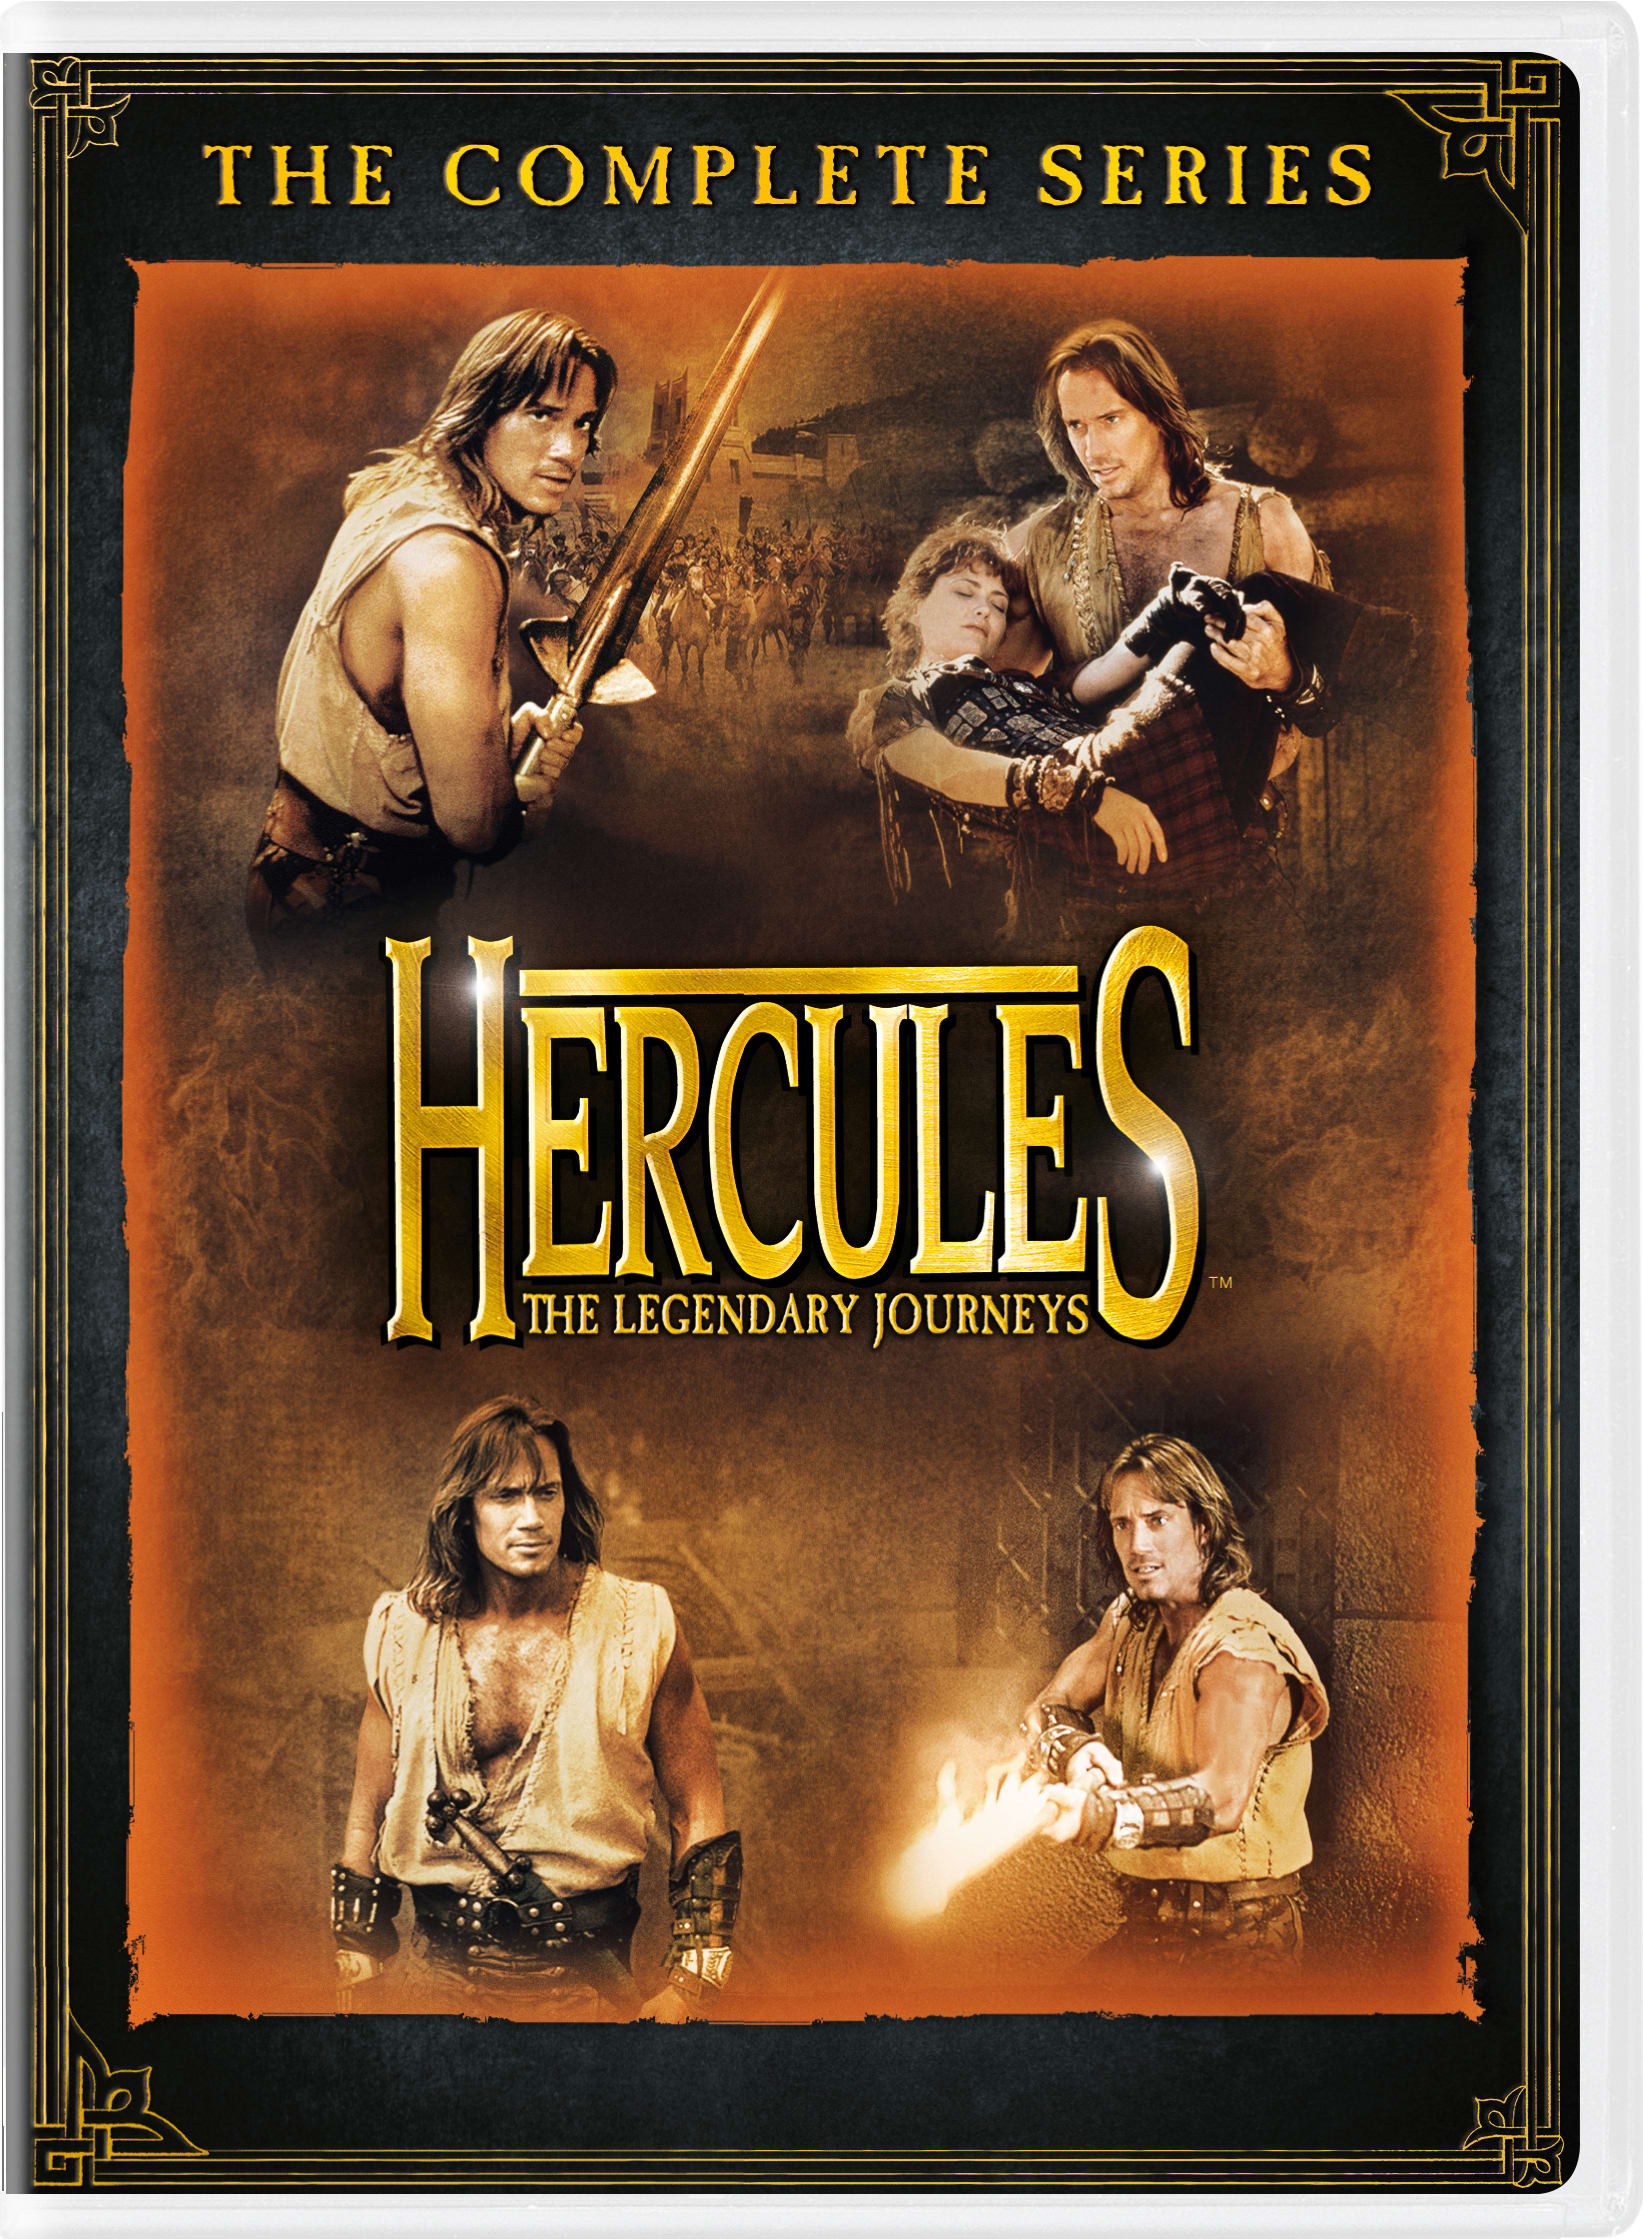 Hercules - The Legendary Journeys: The Complete Series [DVD]